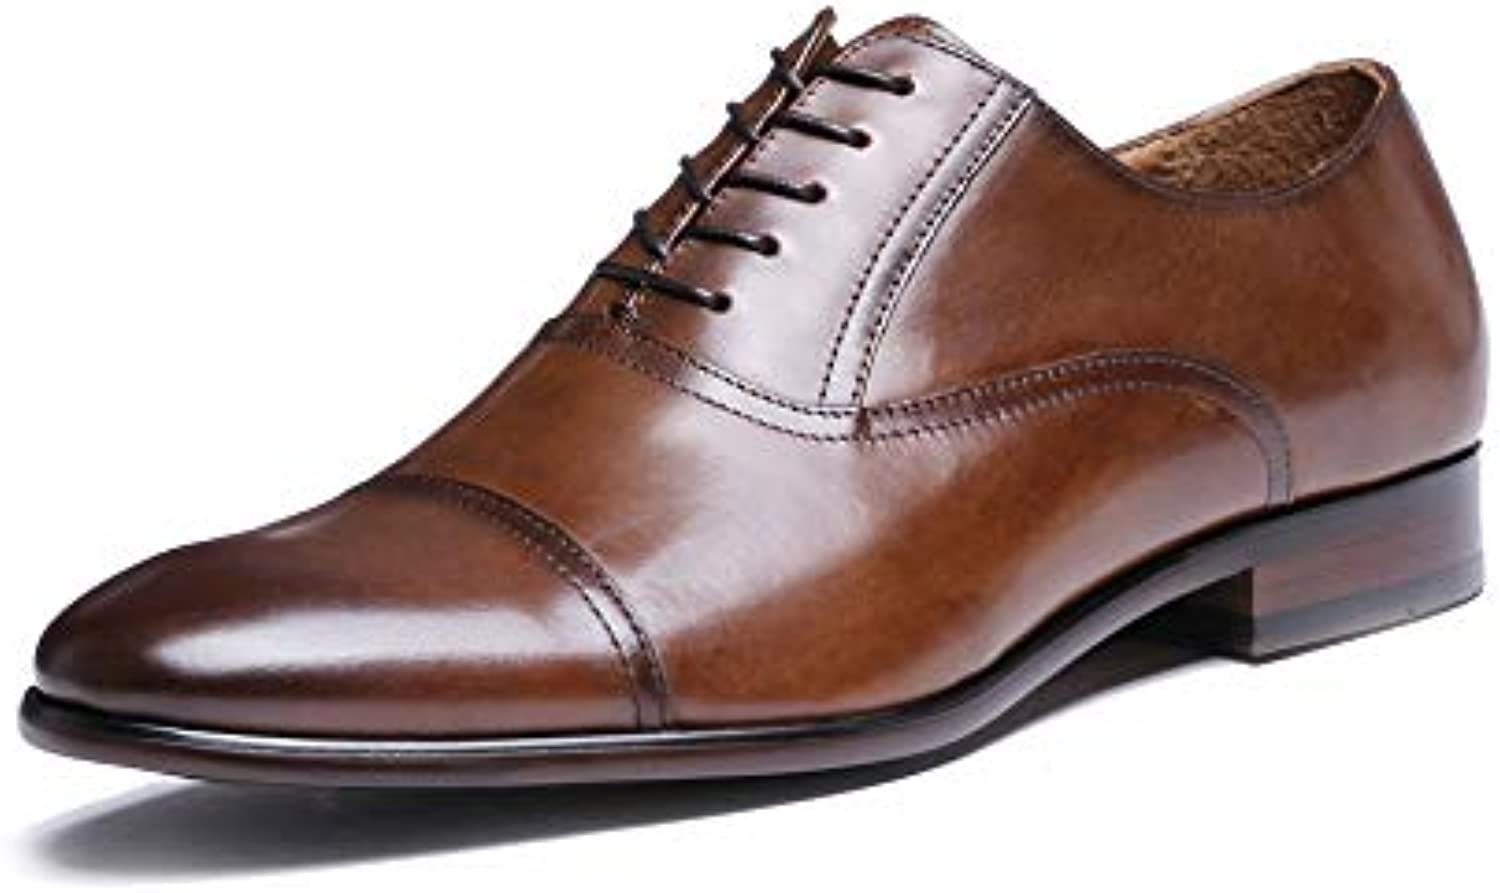 XZP Leather Business Full Grain Dress shoes Retro Patent Leather Oxford shoes For Men (color   Brown, Size   45-EU)